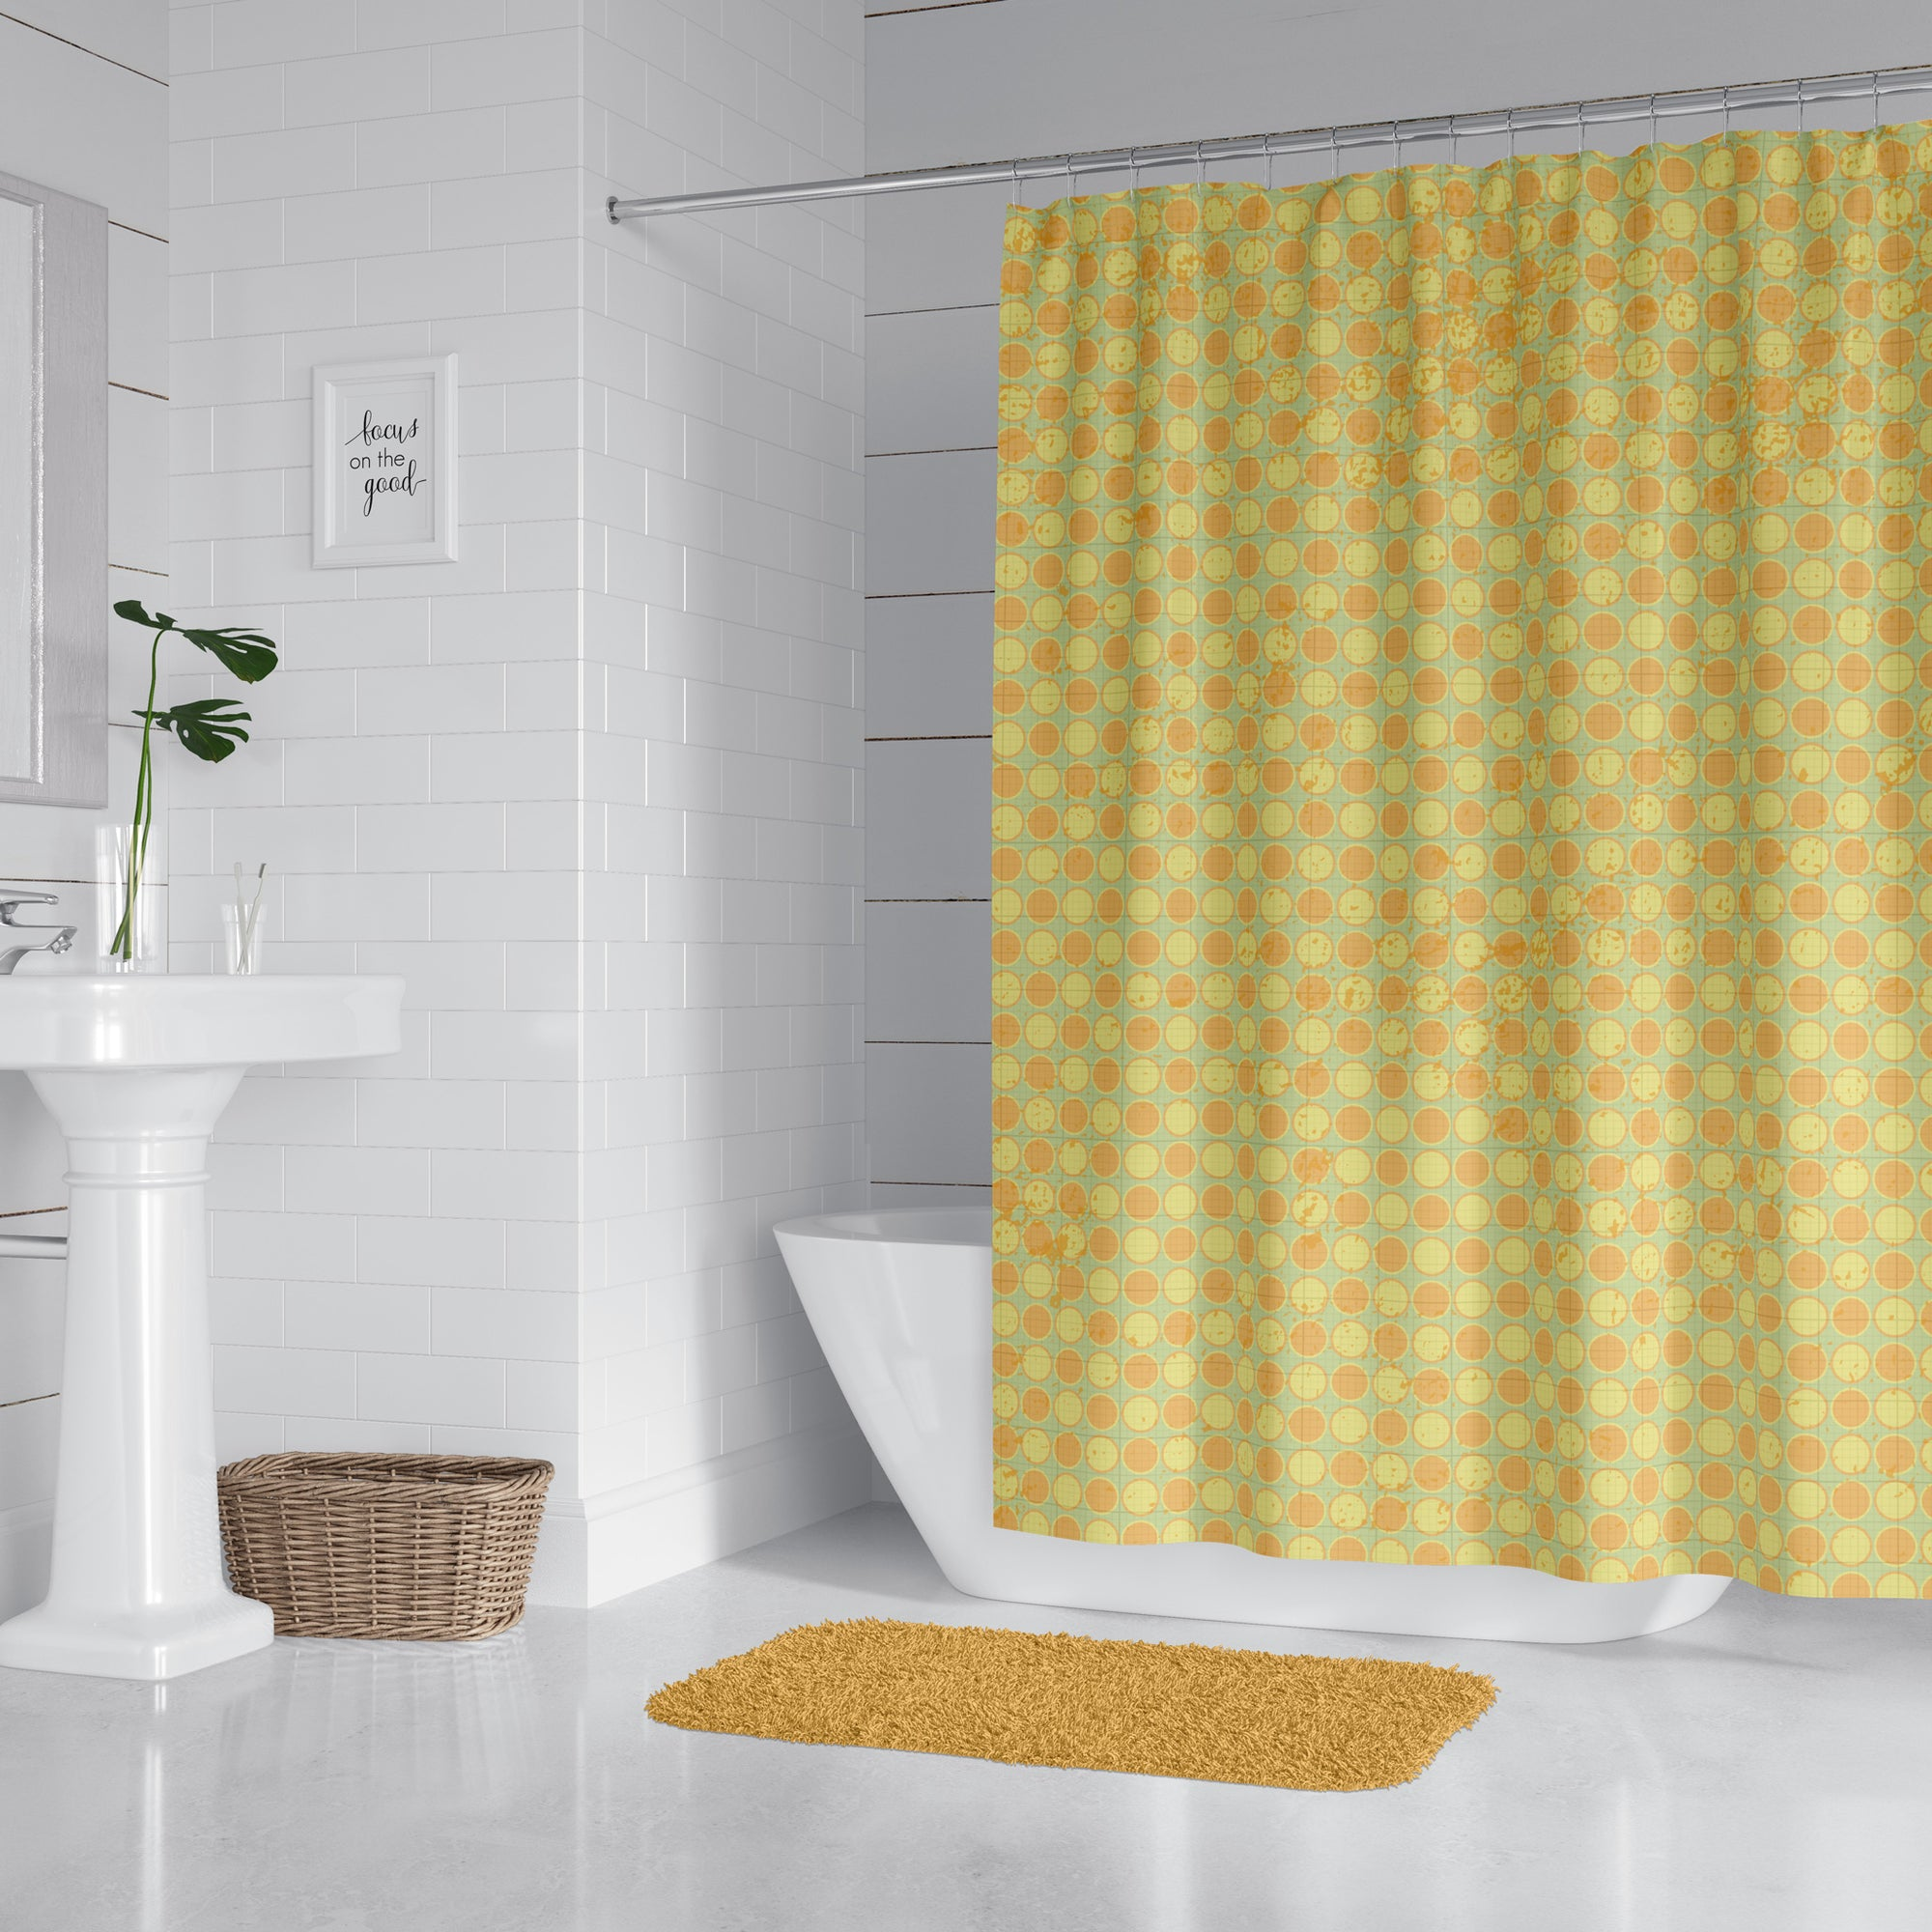 Distressed Polka Dot Shower Curtain